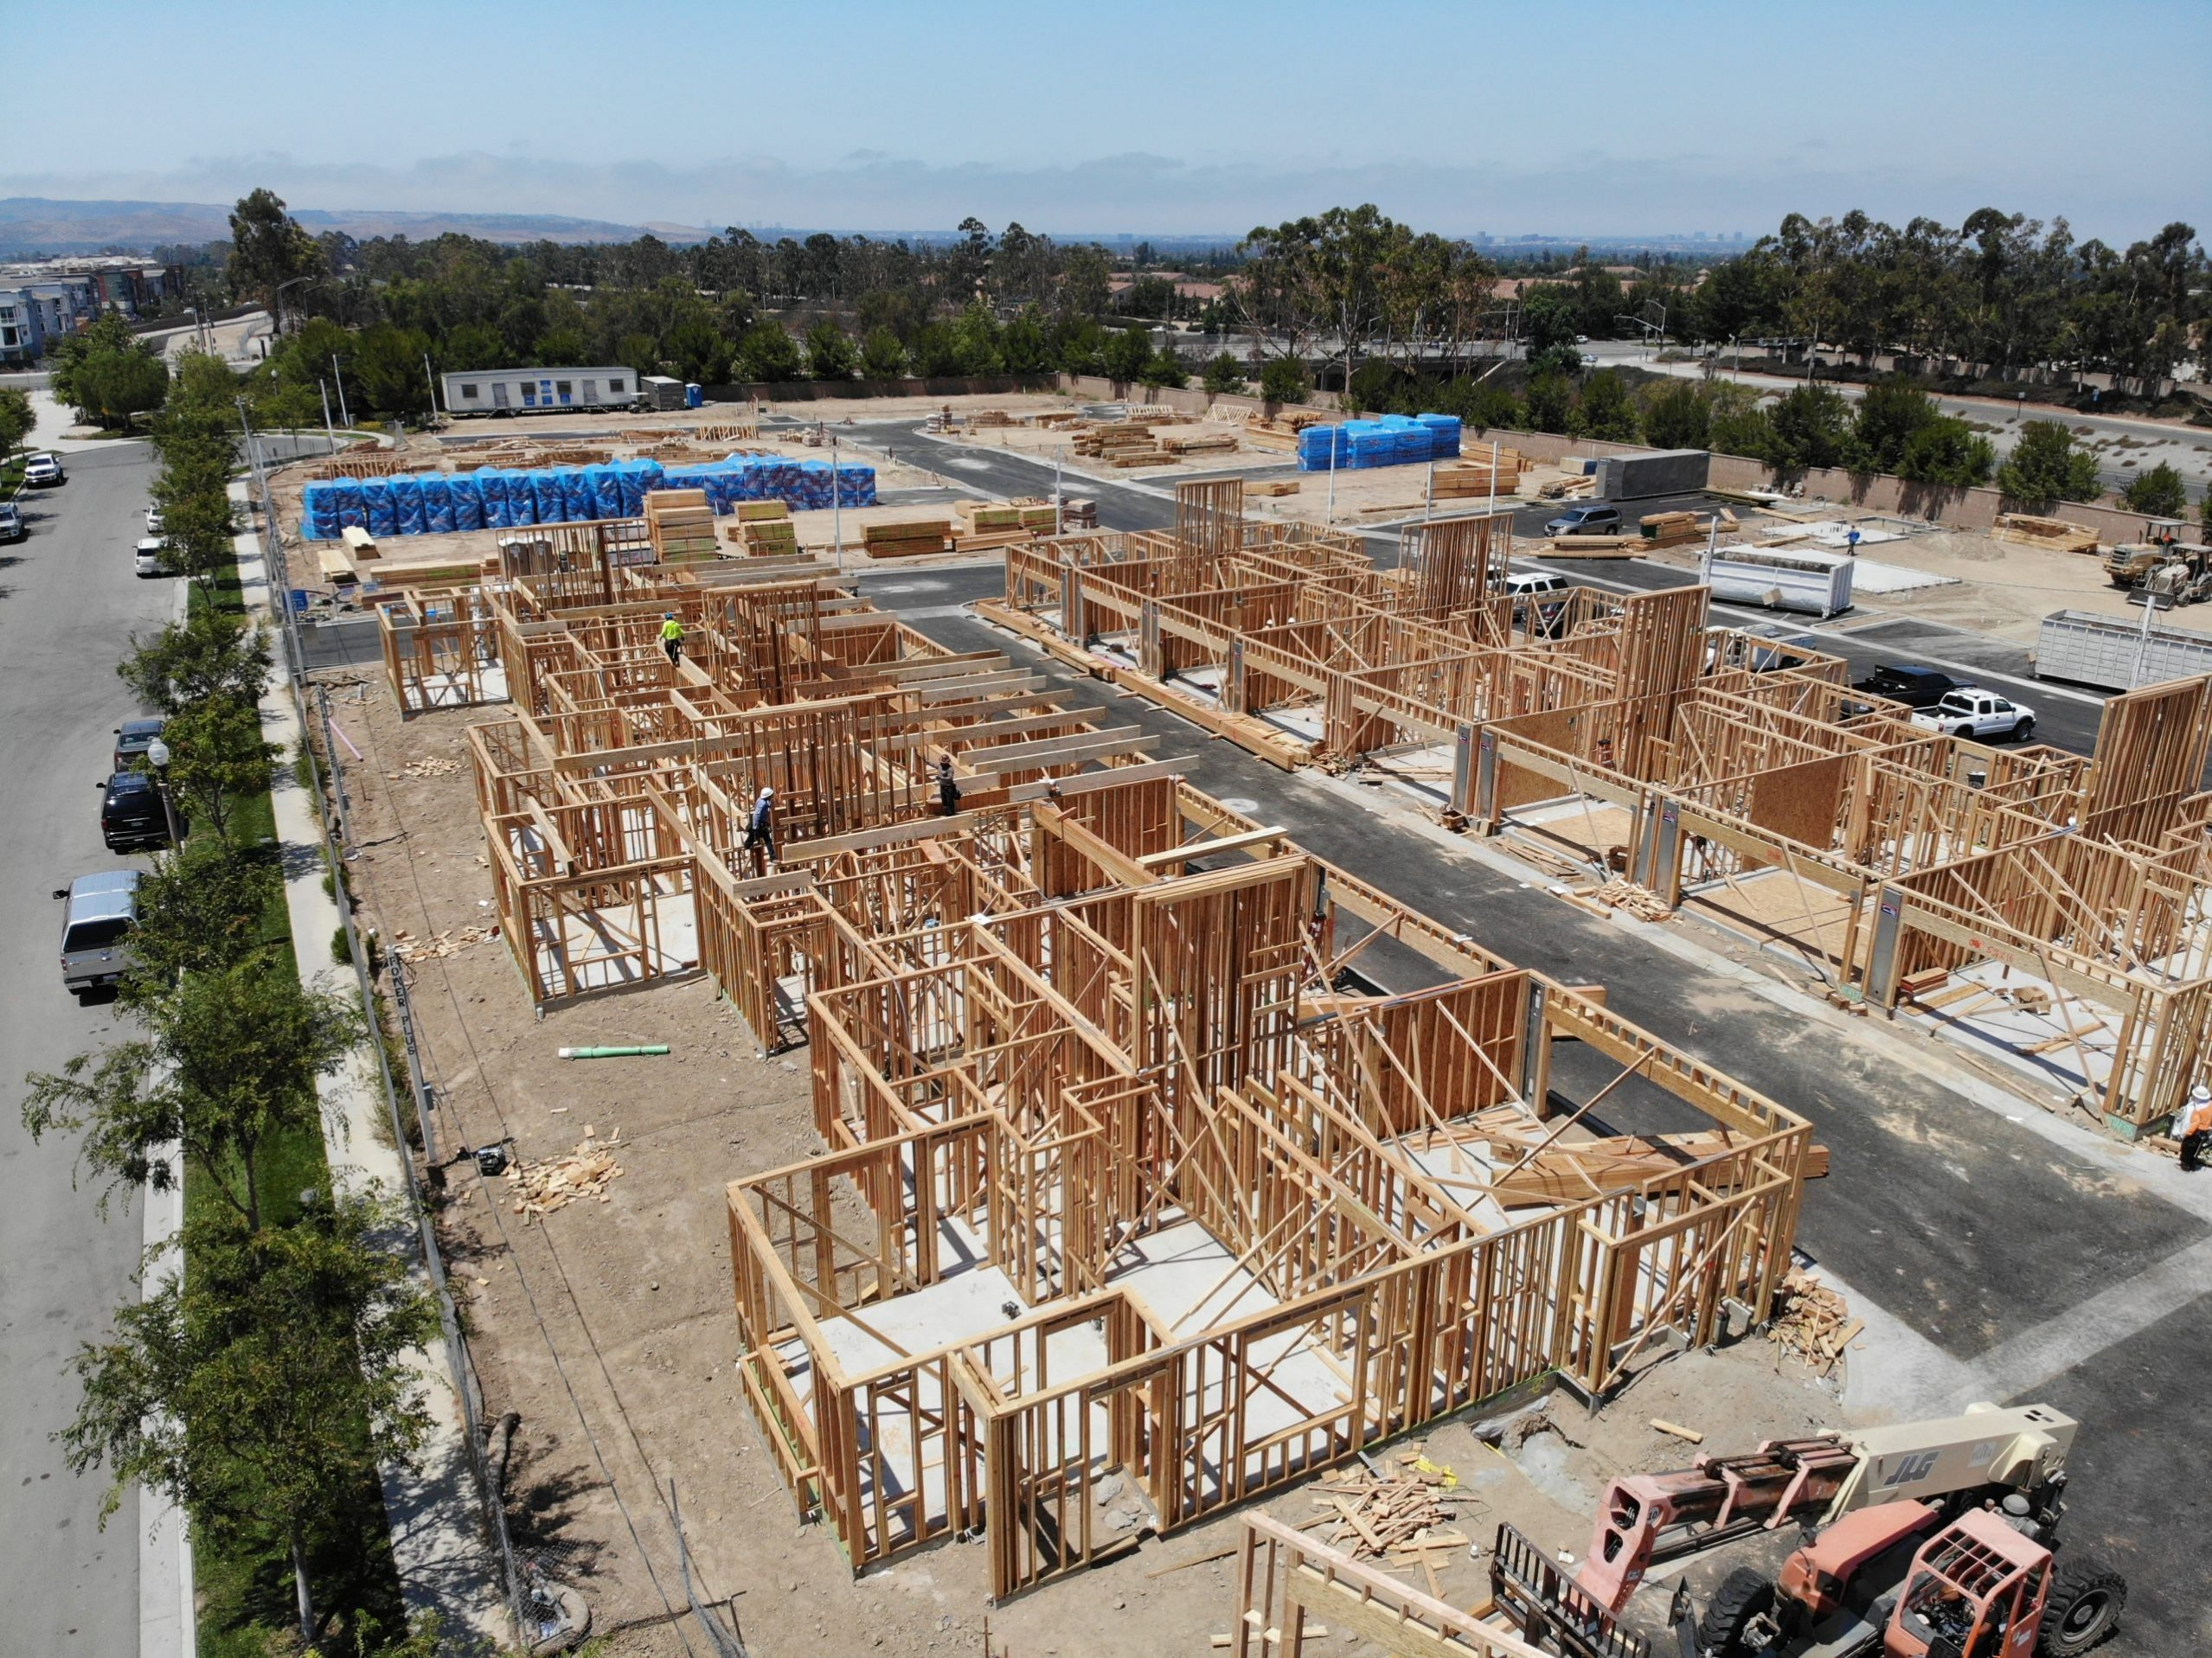 Some community land trusts are aiming for larger scale than has been typical. Here shows a 68-unit affordable townhome development being built -- large blocks of wood show where units will be. Irvine CLT will operate the site.